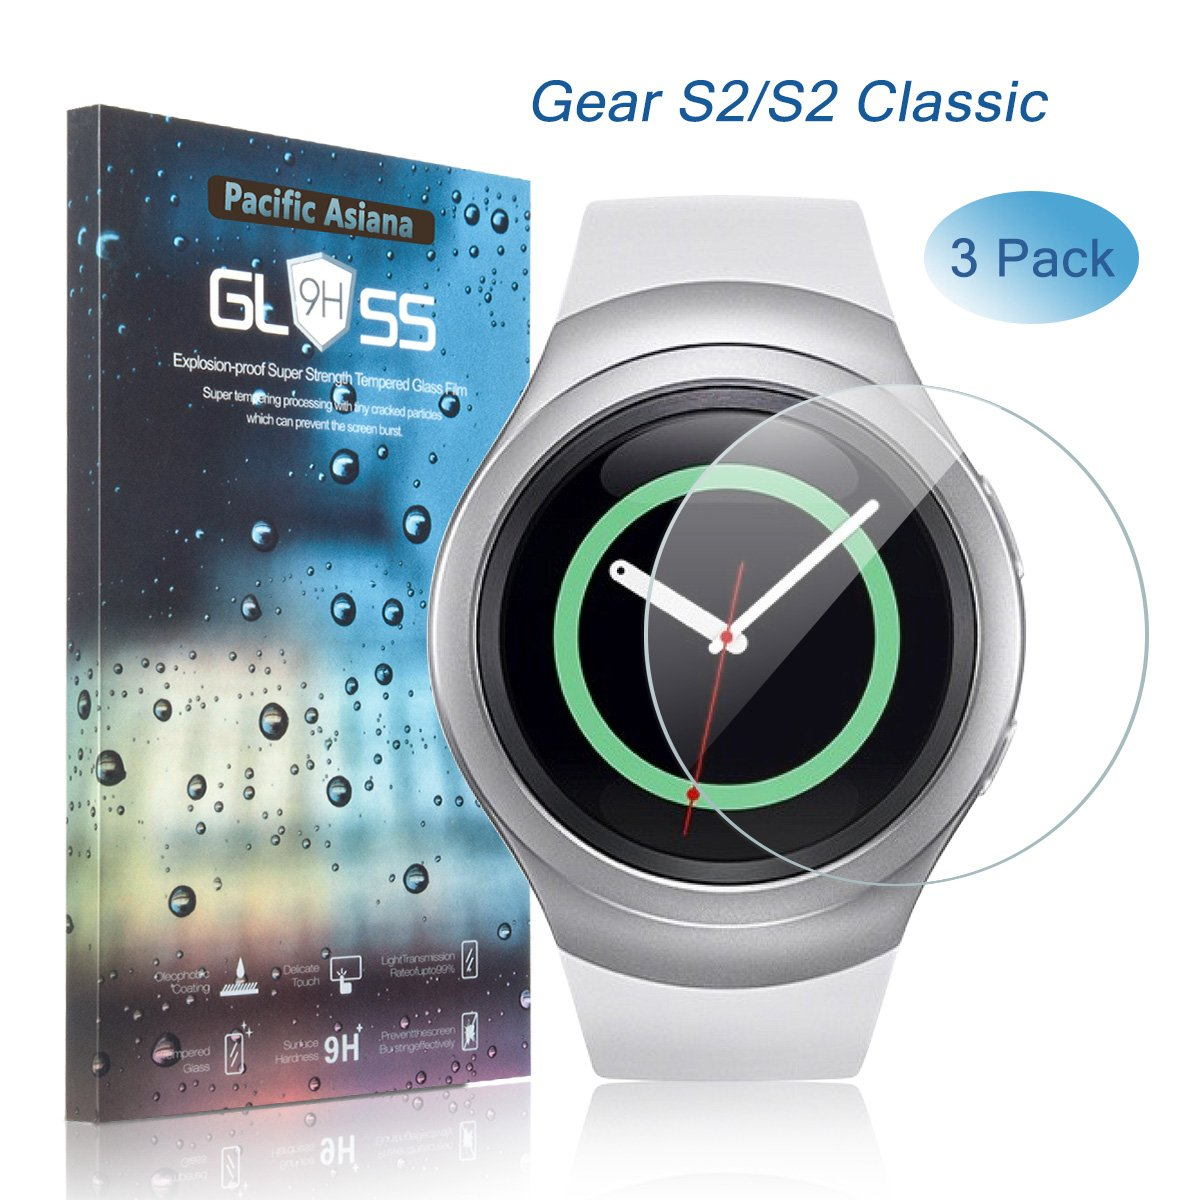 Samsung Gear S2 Screen Protector, [3-Pack] Pacific Asiana Ultra Thin HD Clear Ballistic Gear S2/Gear S2 Classic/S2 3G Tempered Glass Screen Protector, 9H Hardness Anti-scratch Smart Watch Skin Cover